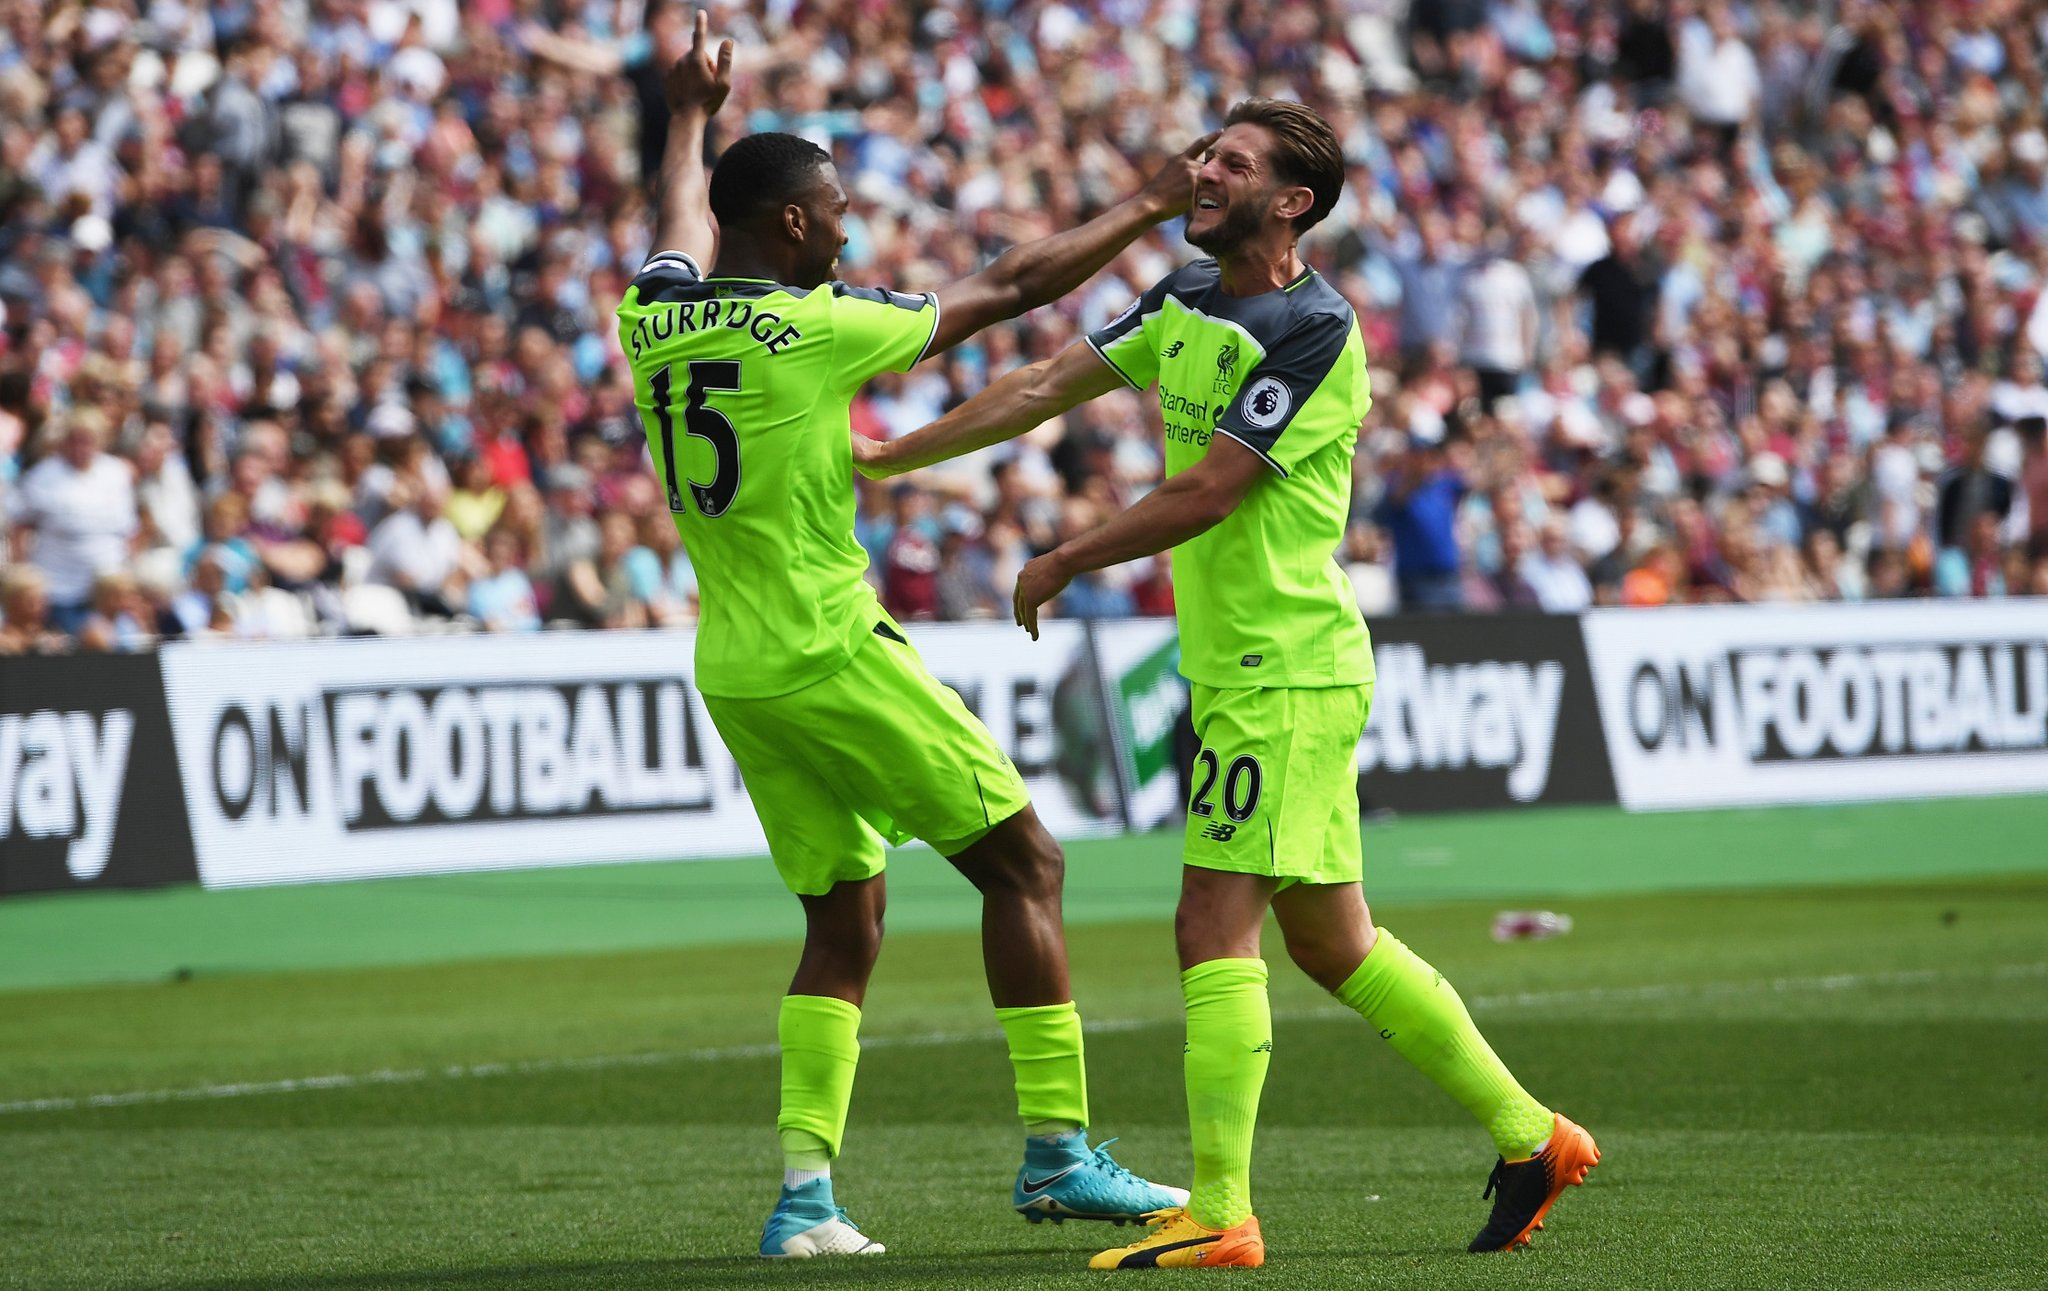 Liverpool Rout West Ham, On Verge Of Champions League Return